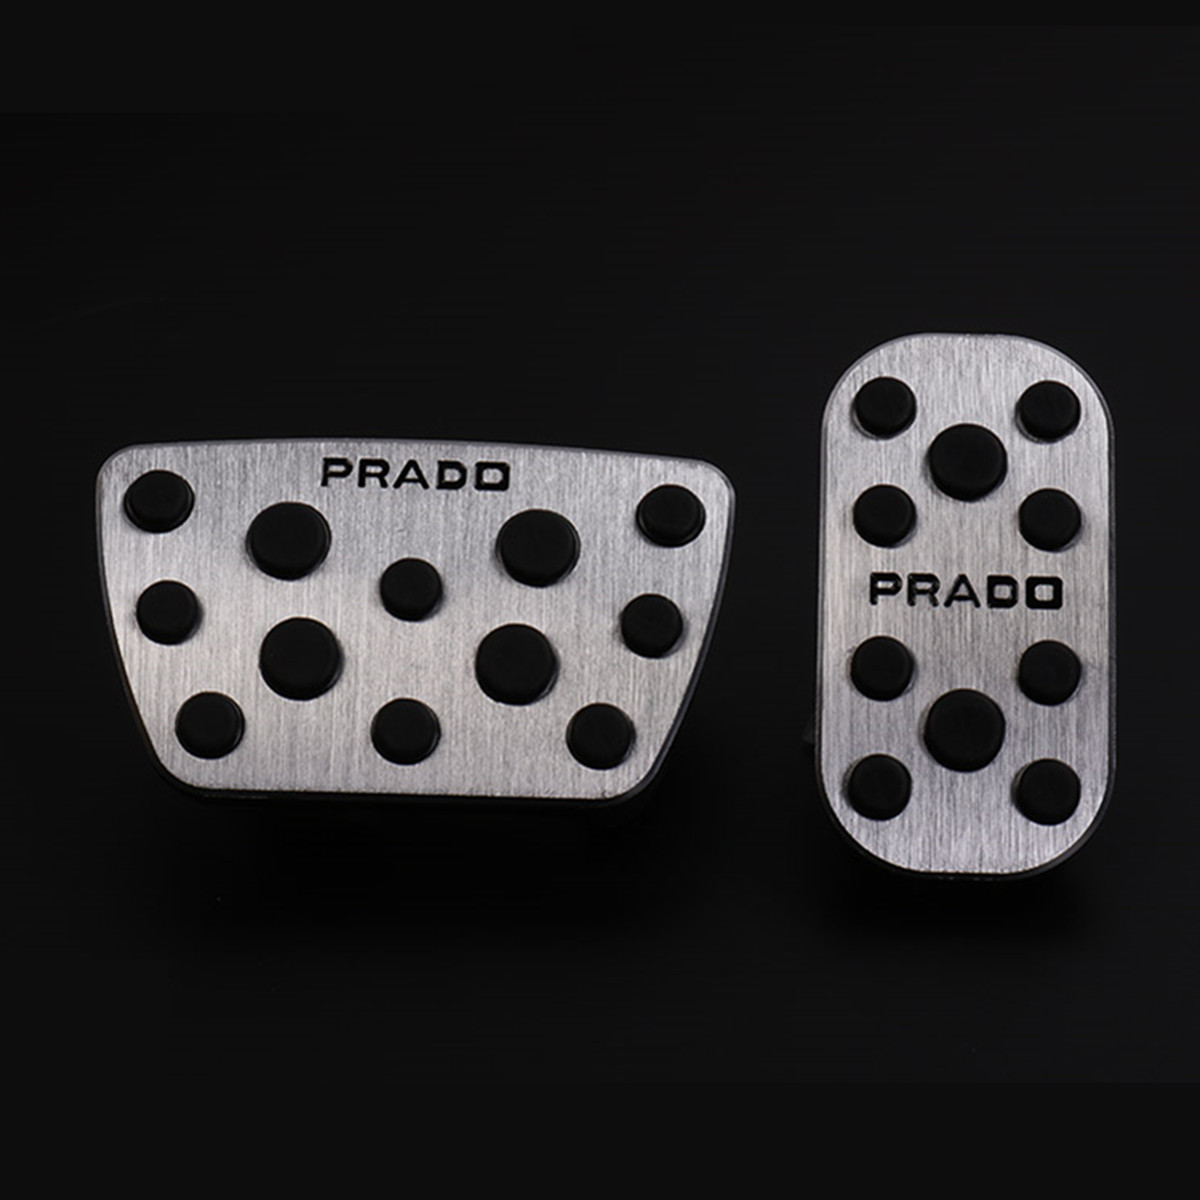 Image 2 - Car Accelerator and Brake Pedals for Toyota Land Cruiser Prado 150 2010 2012 2013 2014 2015 2016 2017 2018 AT Accessories-in Chromium Styling from Automobiles & Motorcycles